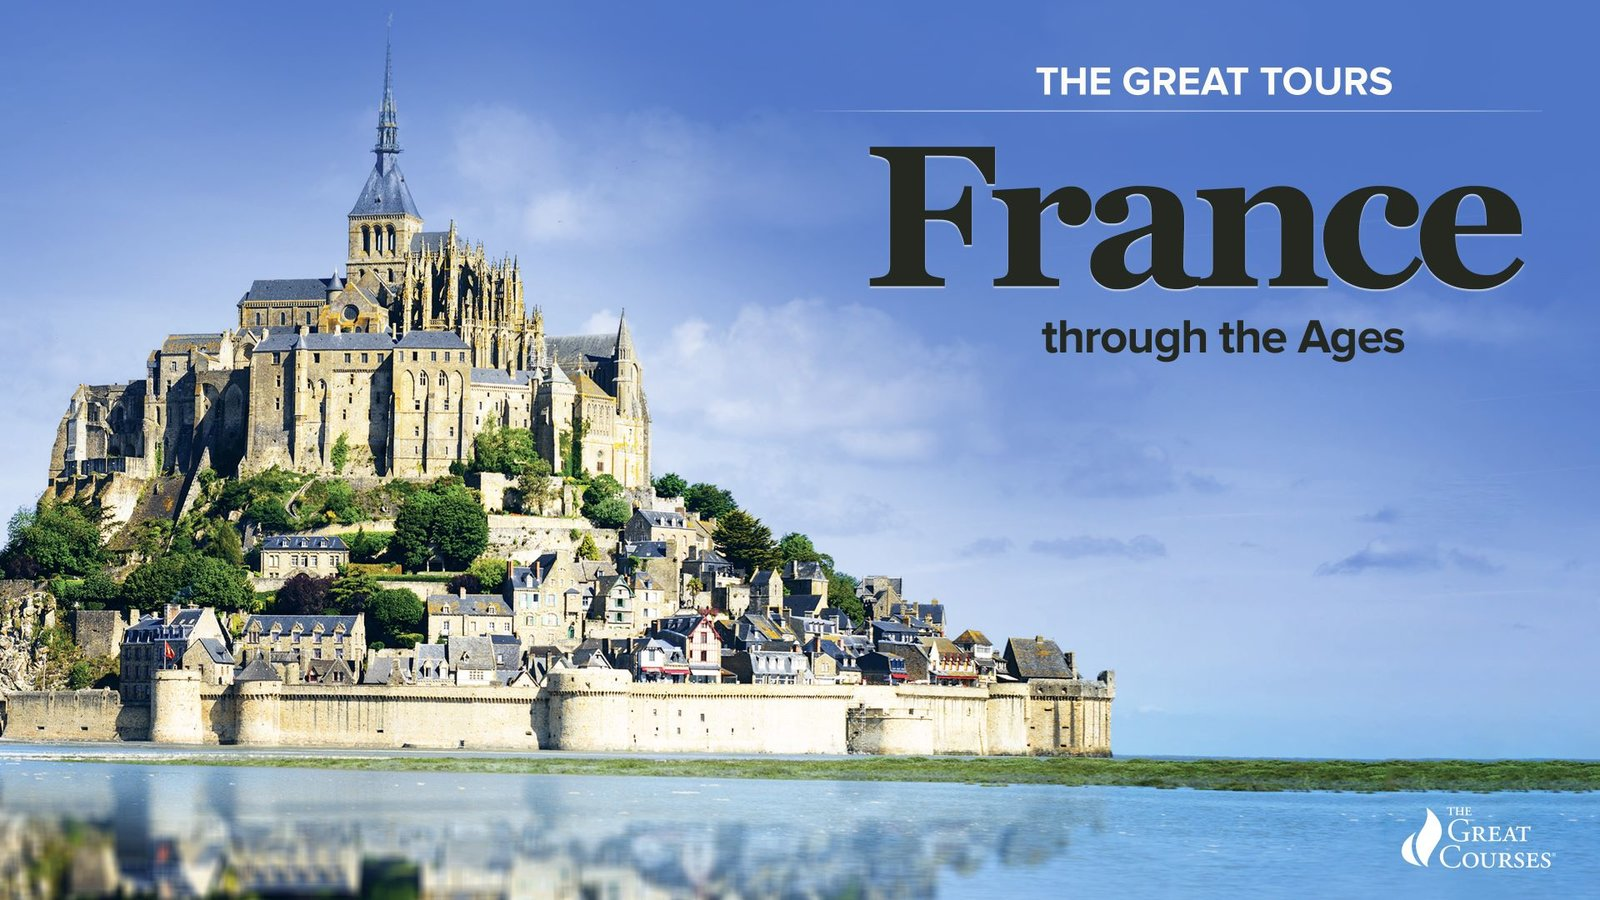 Film cover for The great tours : France through the ages.